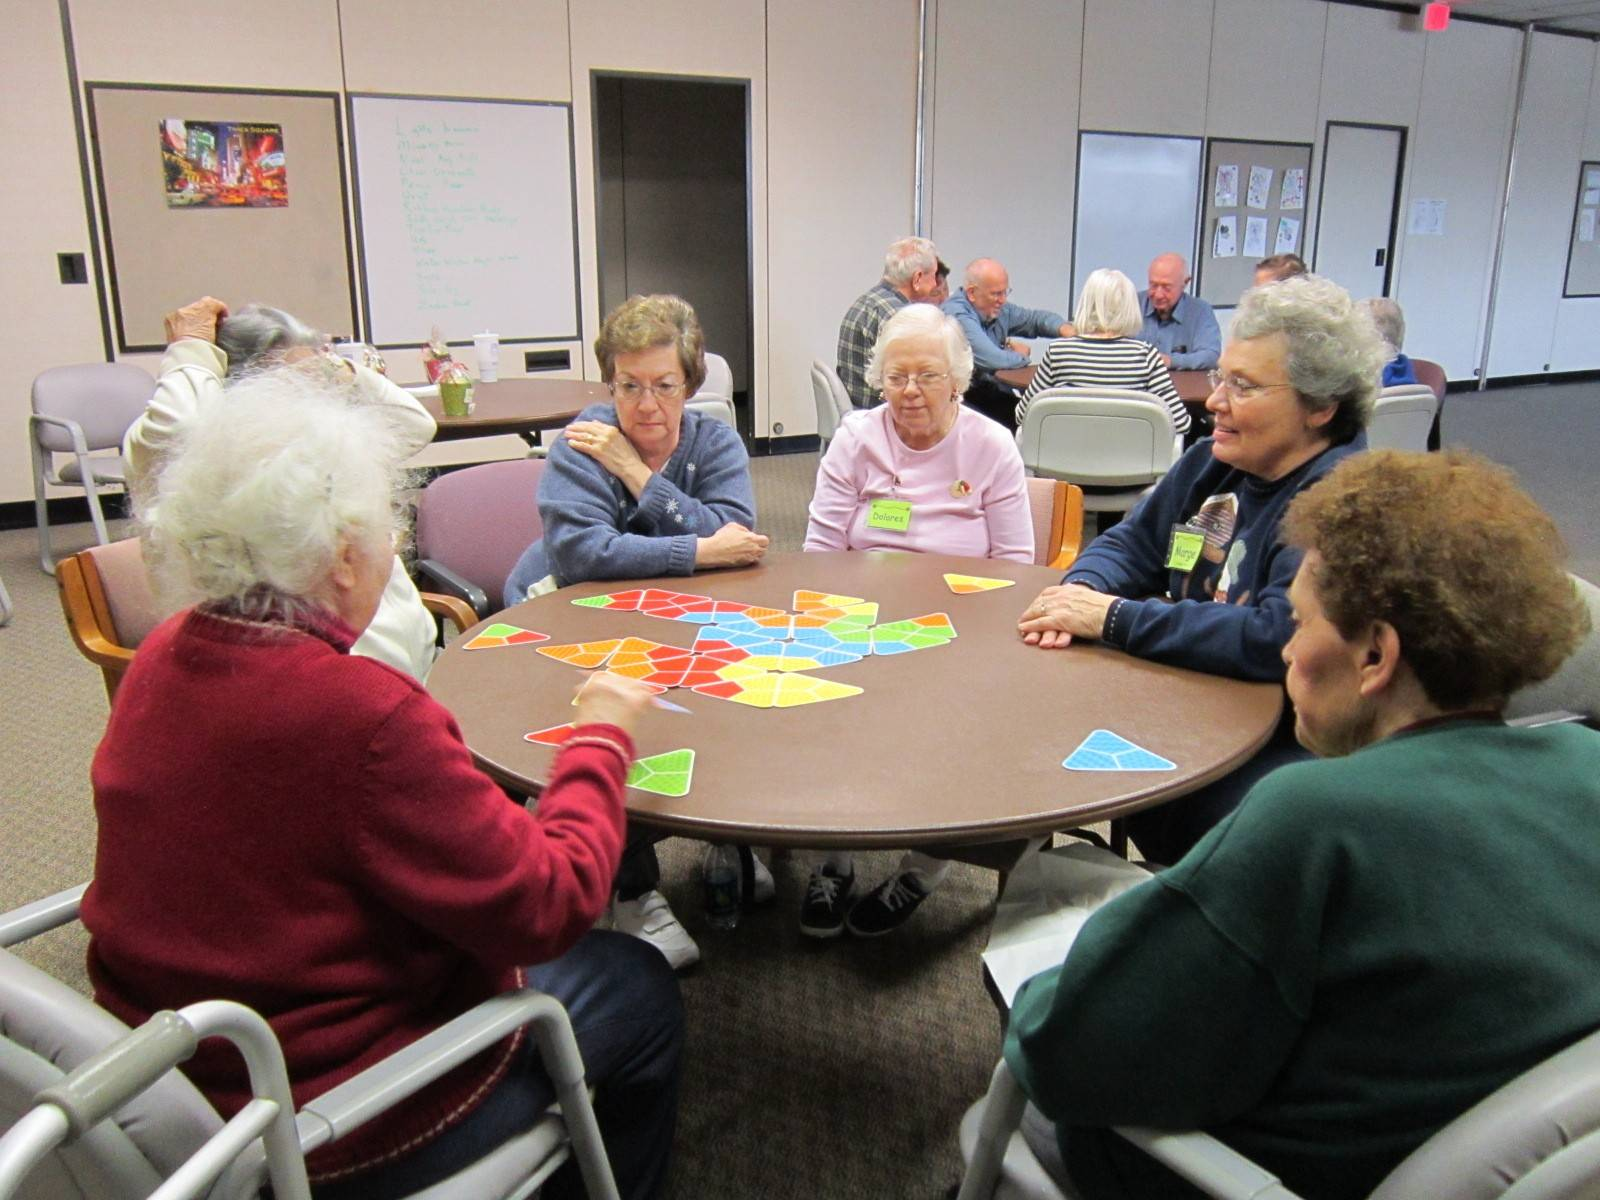 Card and board games are among the social activities participants enjoy at Christus Victor Lutheran Church's A Caring Place.